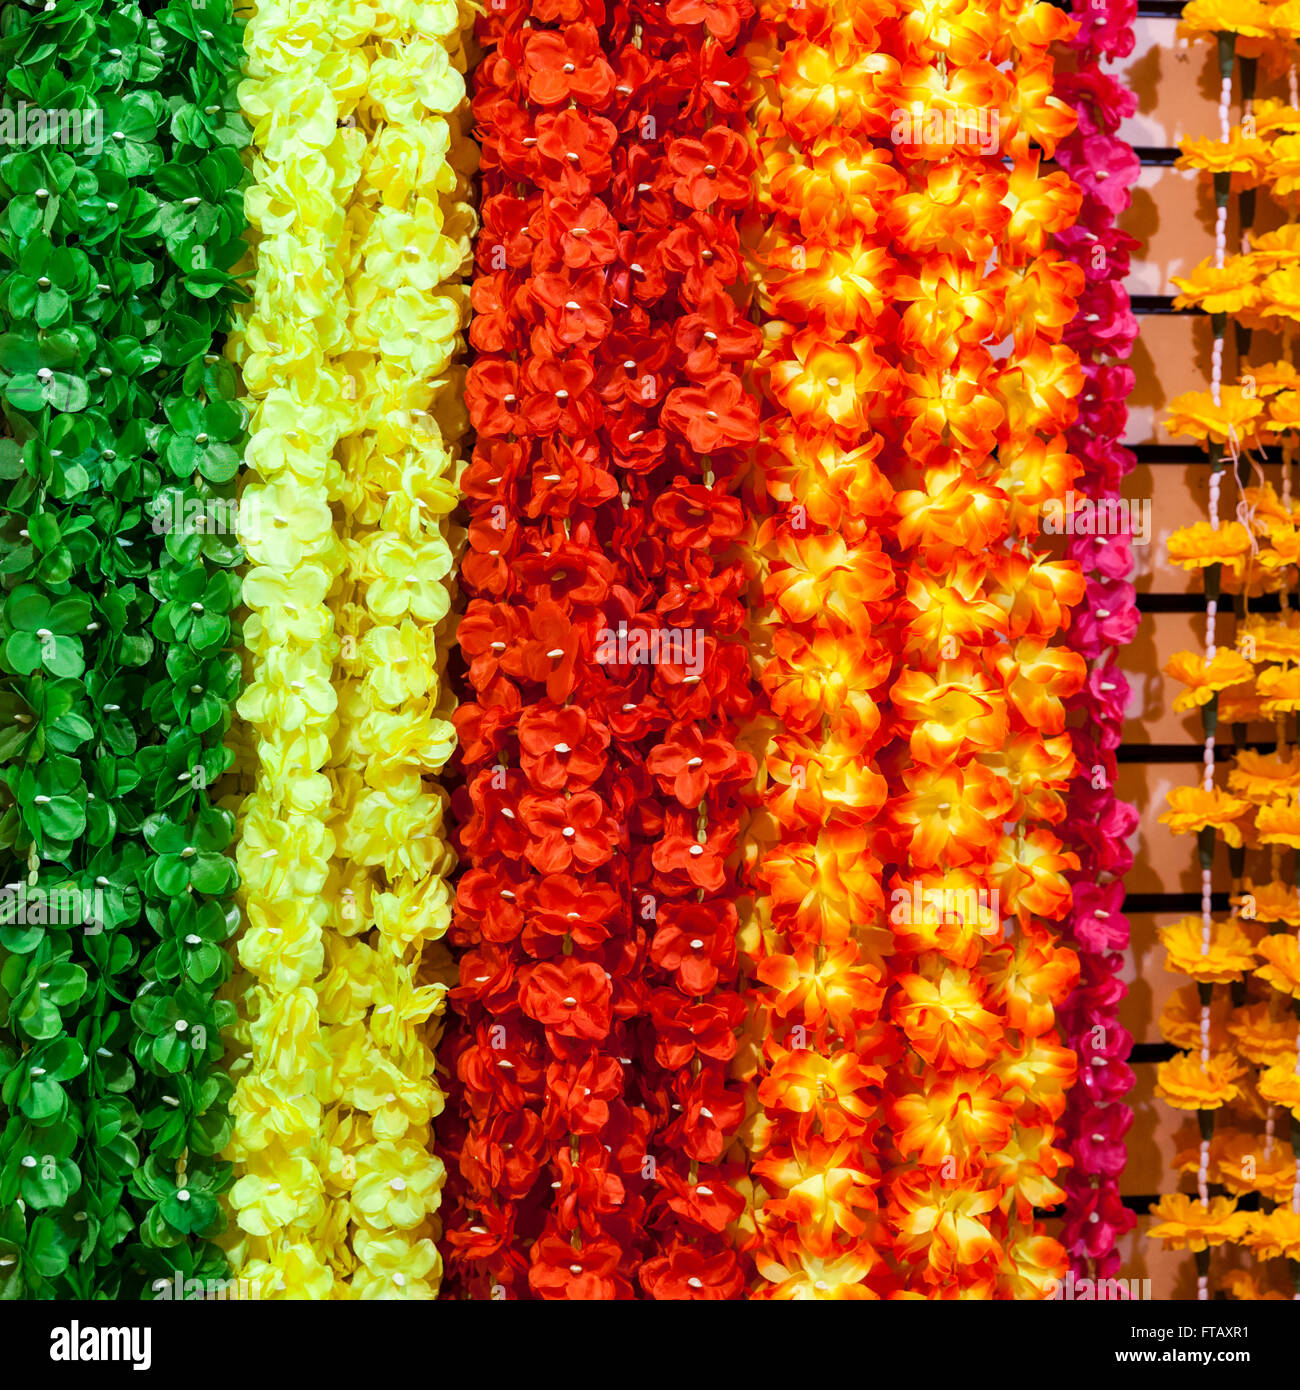 Indian decorative flower garlands on display - Stock Image